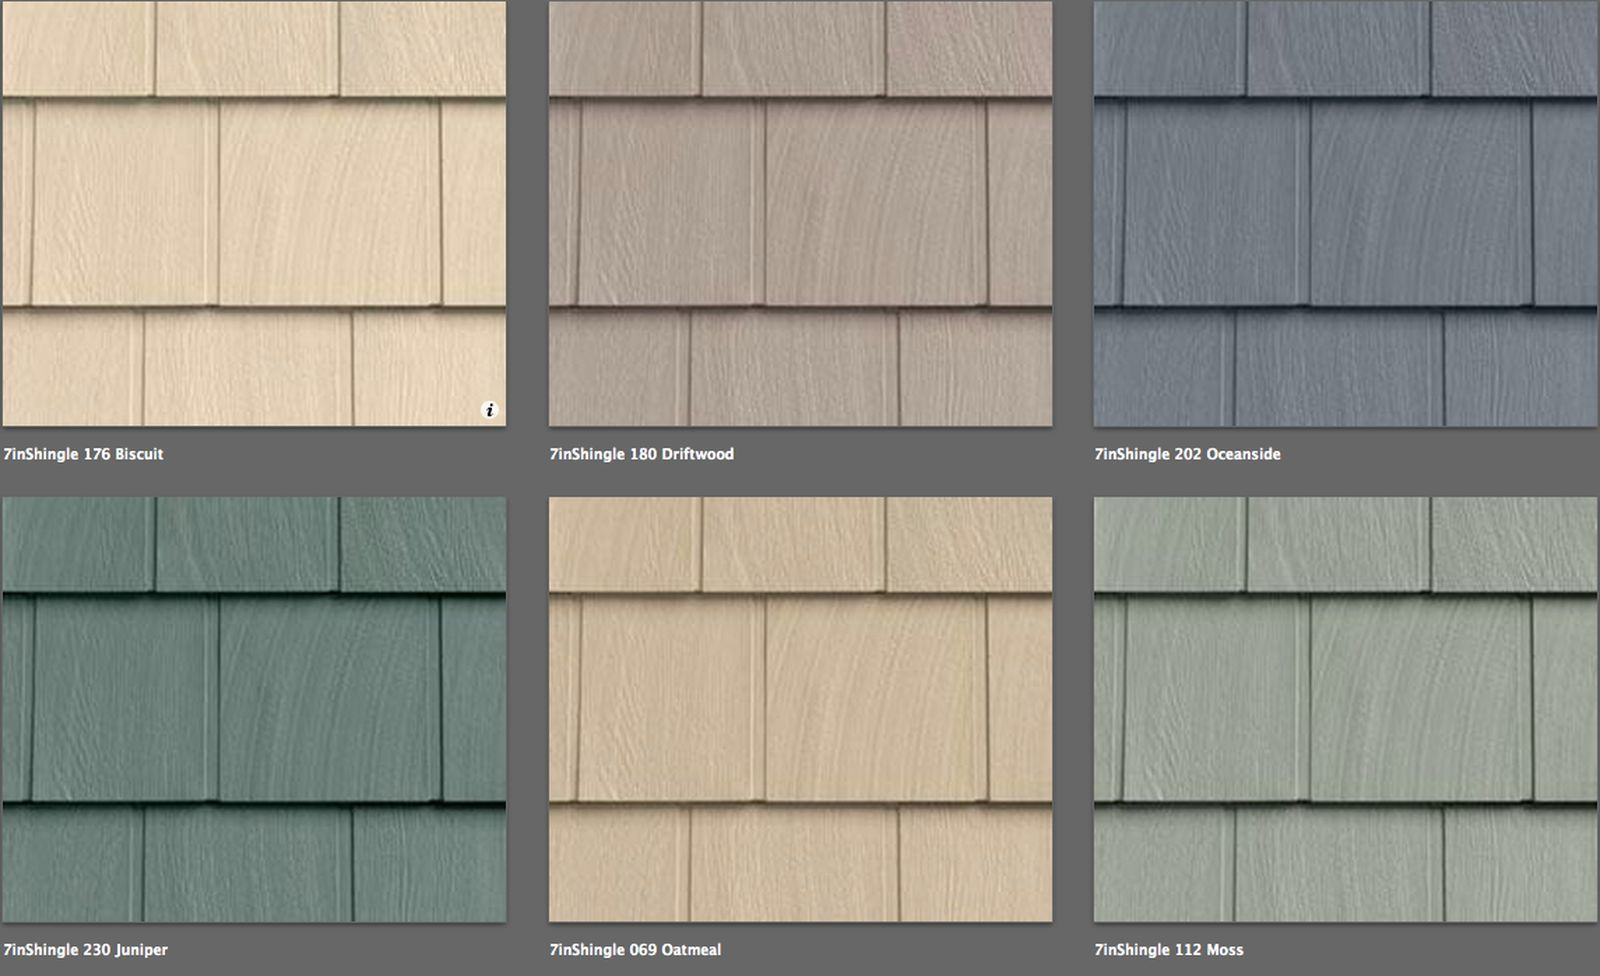 Vinyl Siding Foundry Shingle Like Real Cedar 20 Colors Lifetime Warranty Ebay